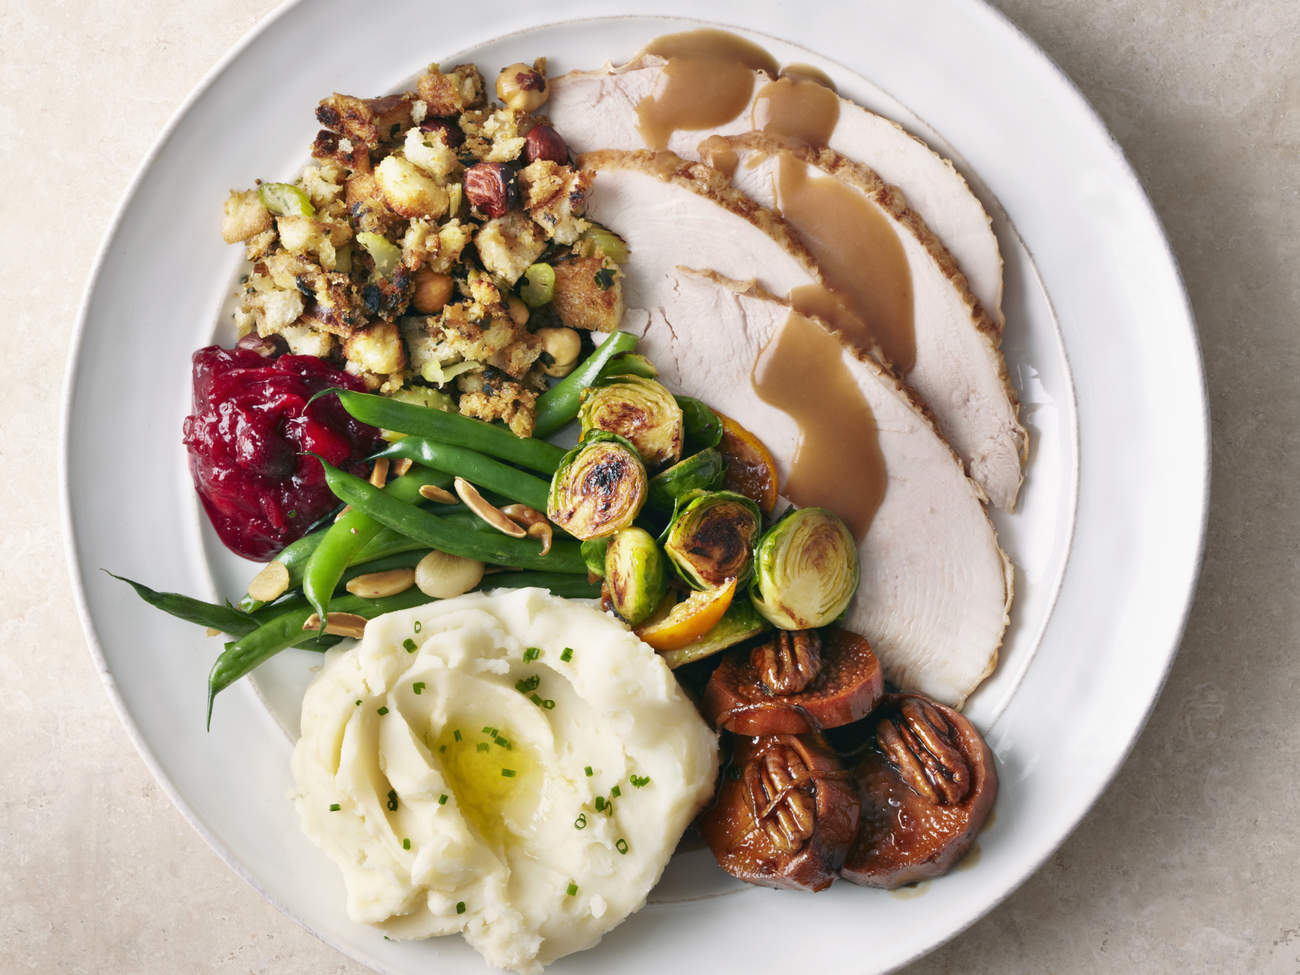 10 Tasty Ways To Enjoy Your Thanksgiving Leftovers